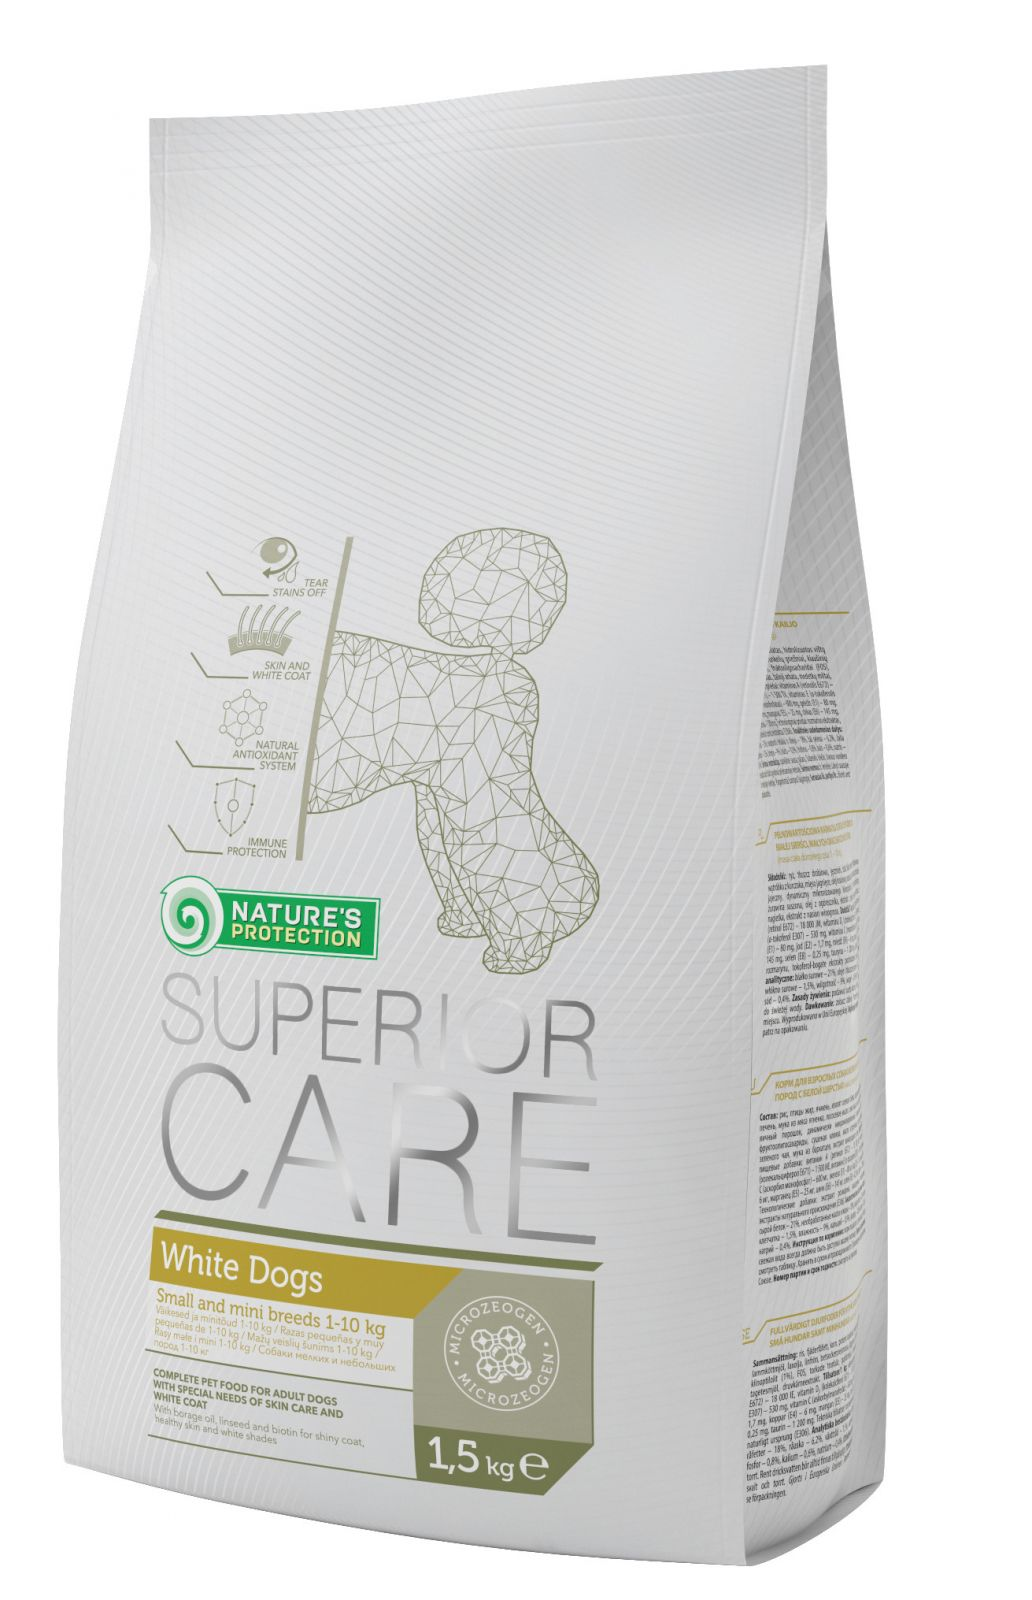 Natures Protection SC White Dog Adult Small&Mini Breeds 1,5kg Nature´s Protection